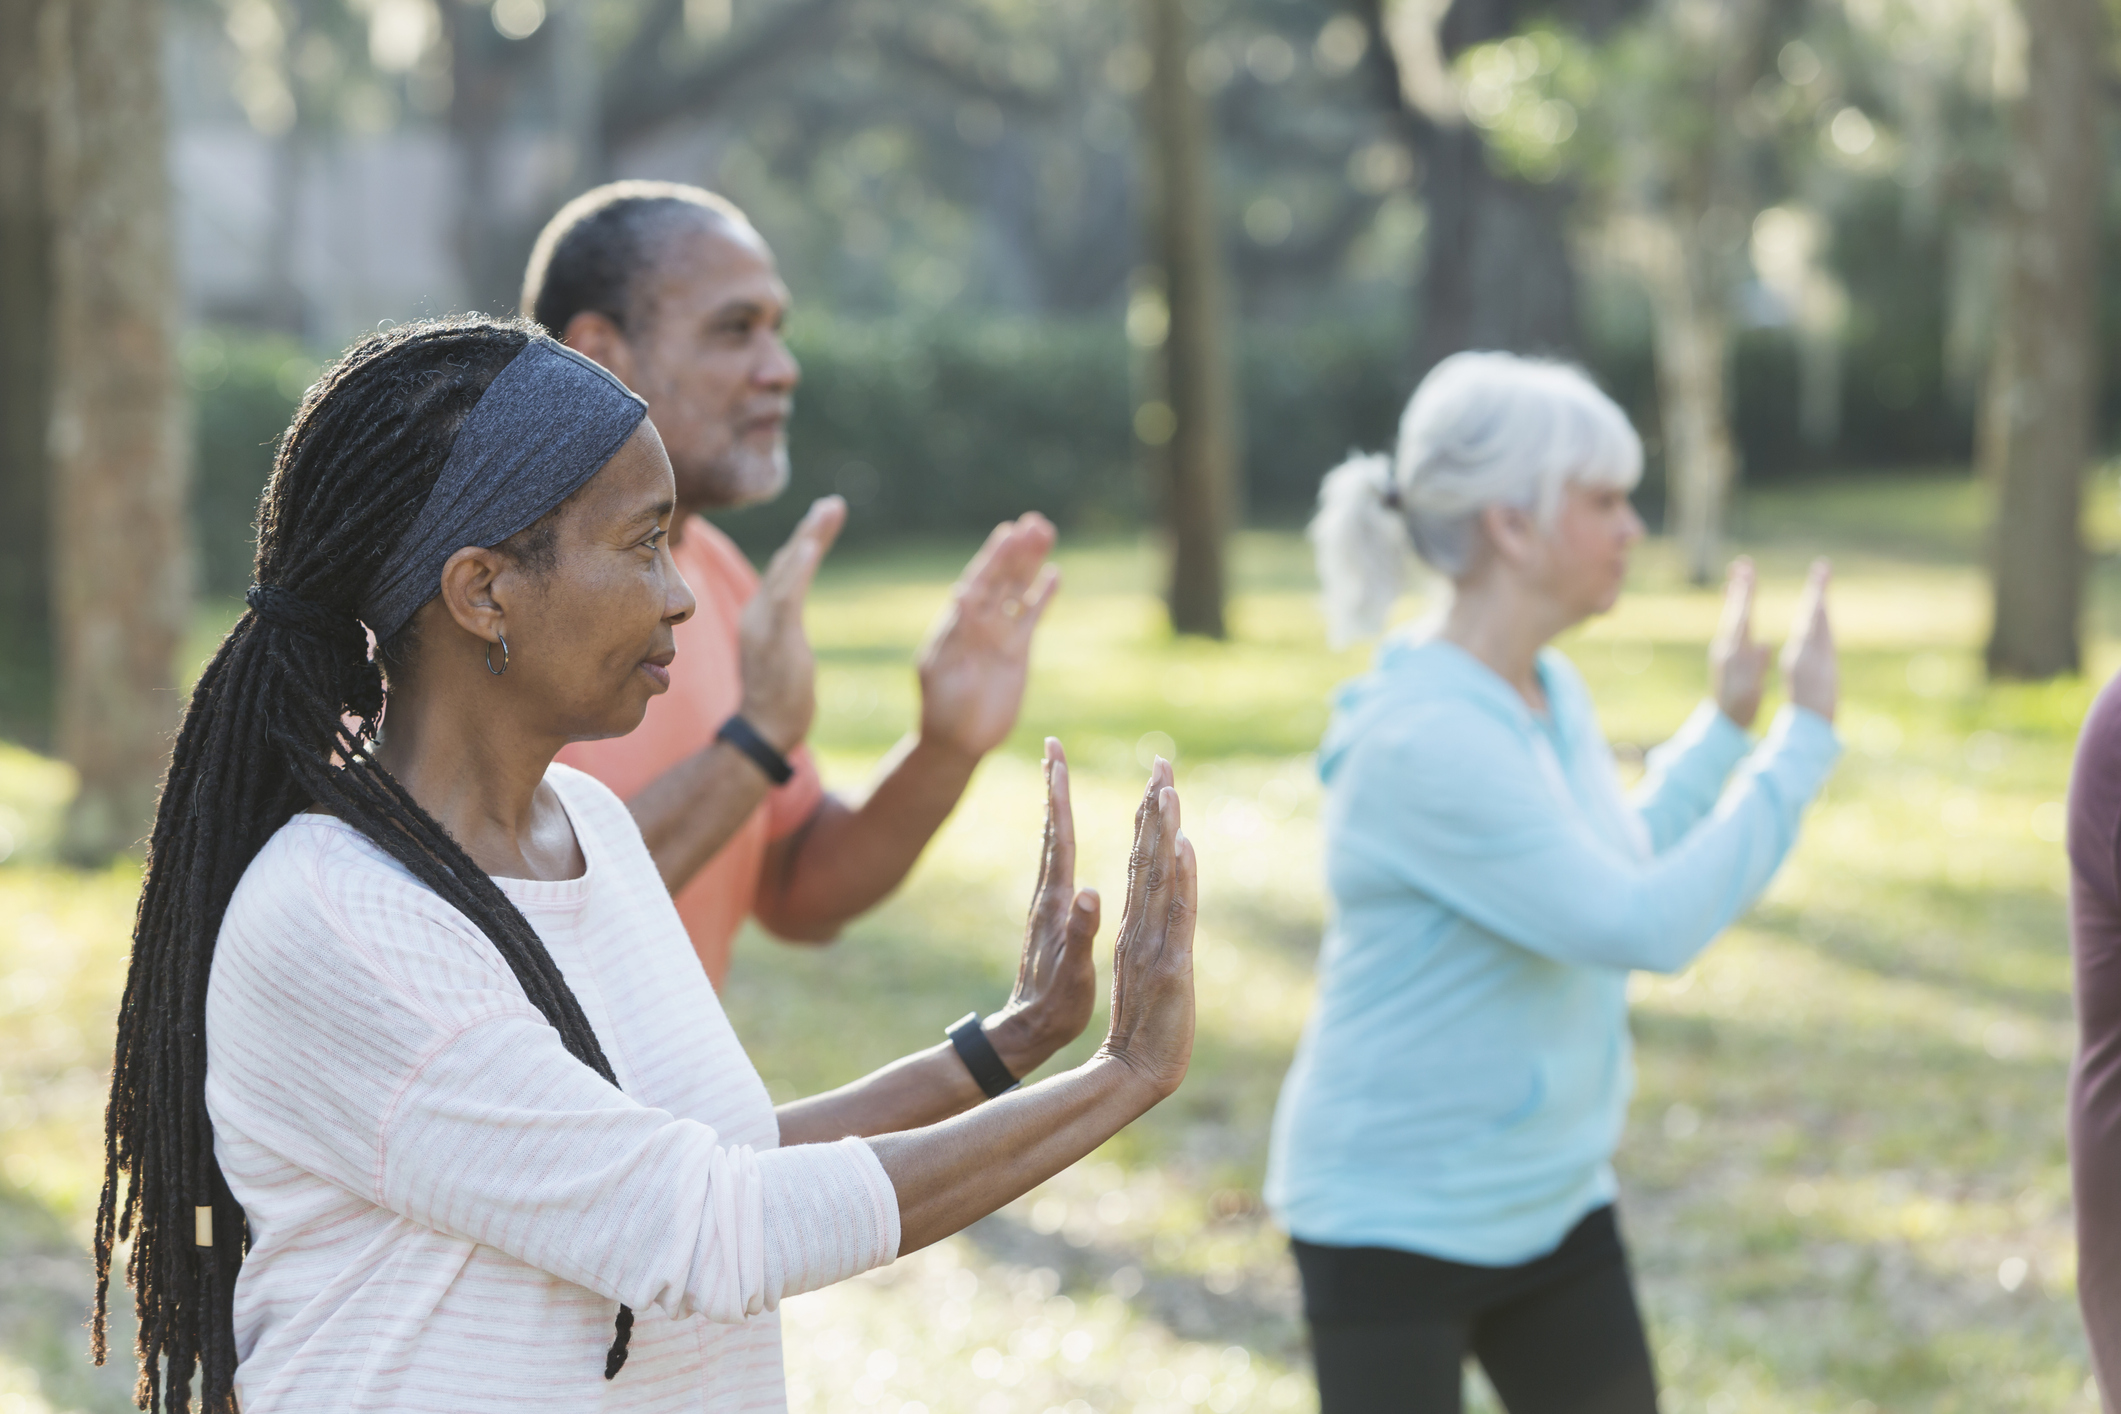 A group of three multi-ethnic seniors taking an exercise class in the park. They are practicing tai chi, standing with their hands raised. The focus is on the Africam-American woman with braided hair standing in the foreground.